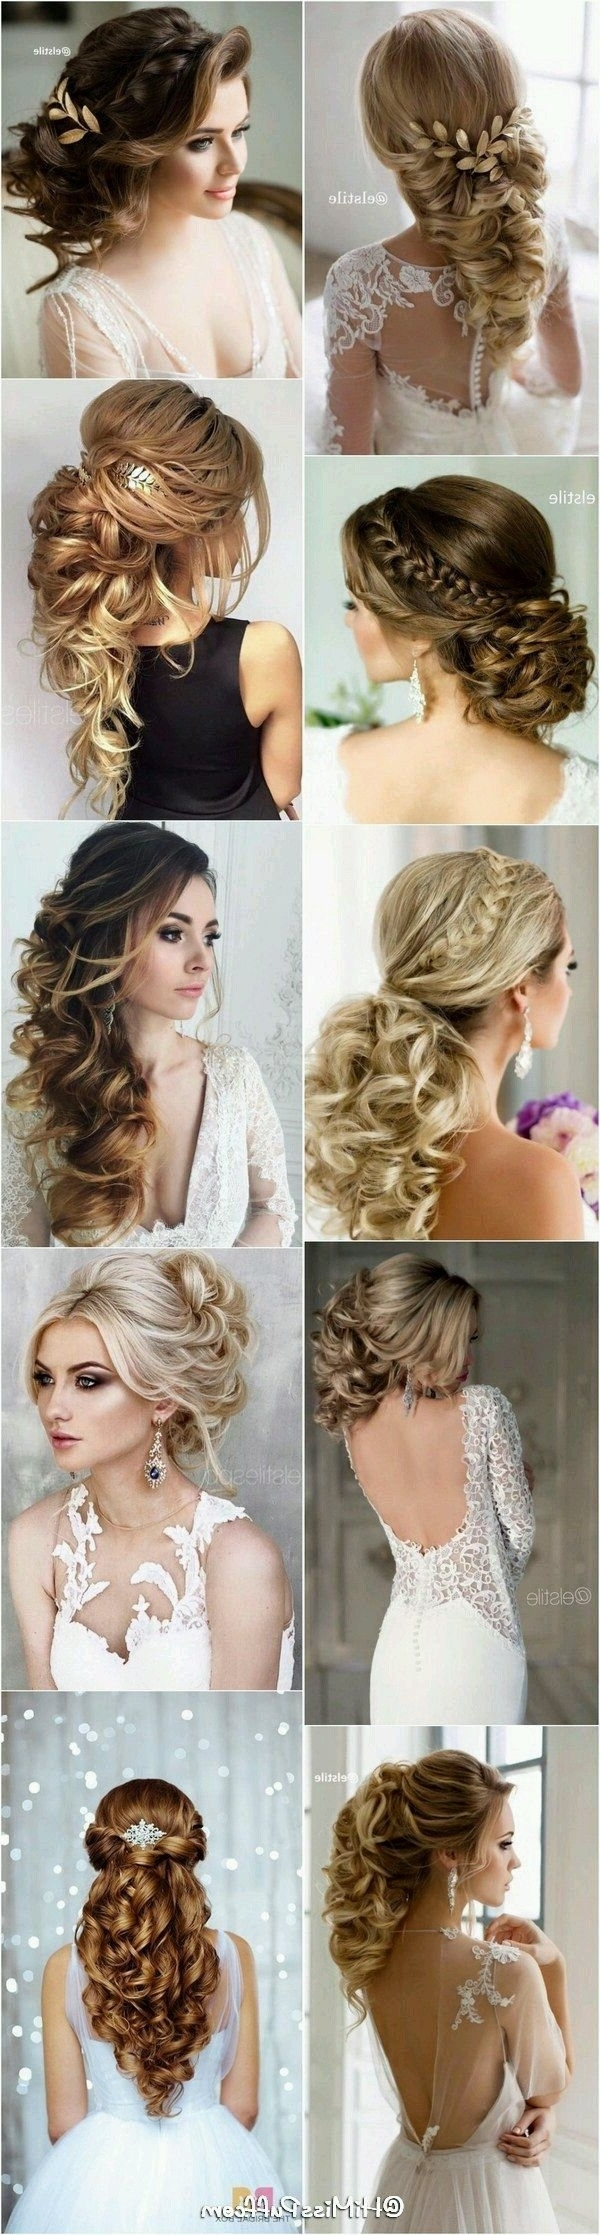 Popular Wedding Hairstyles With Fringe Pertaining To Unique Vintage Wedding Hairstyles With Fringe Gallery (View 12 of 15)